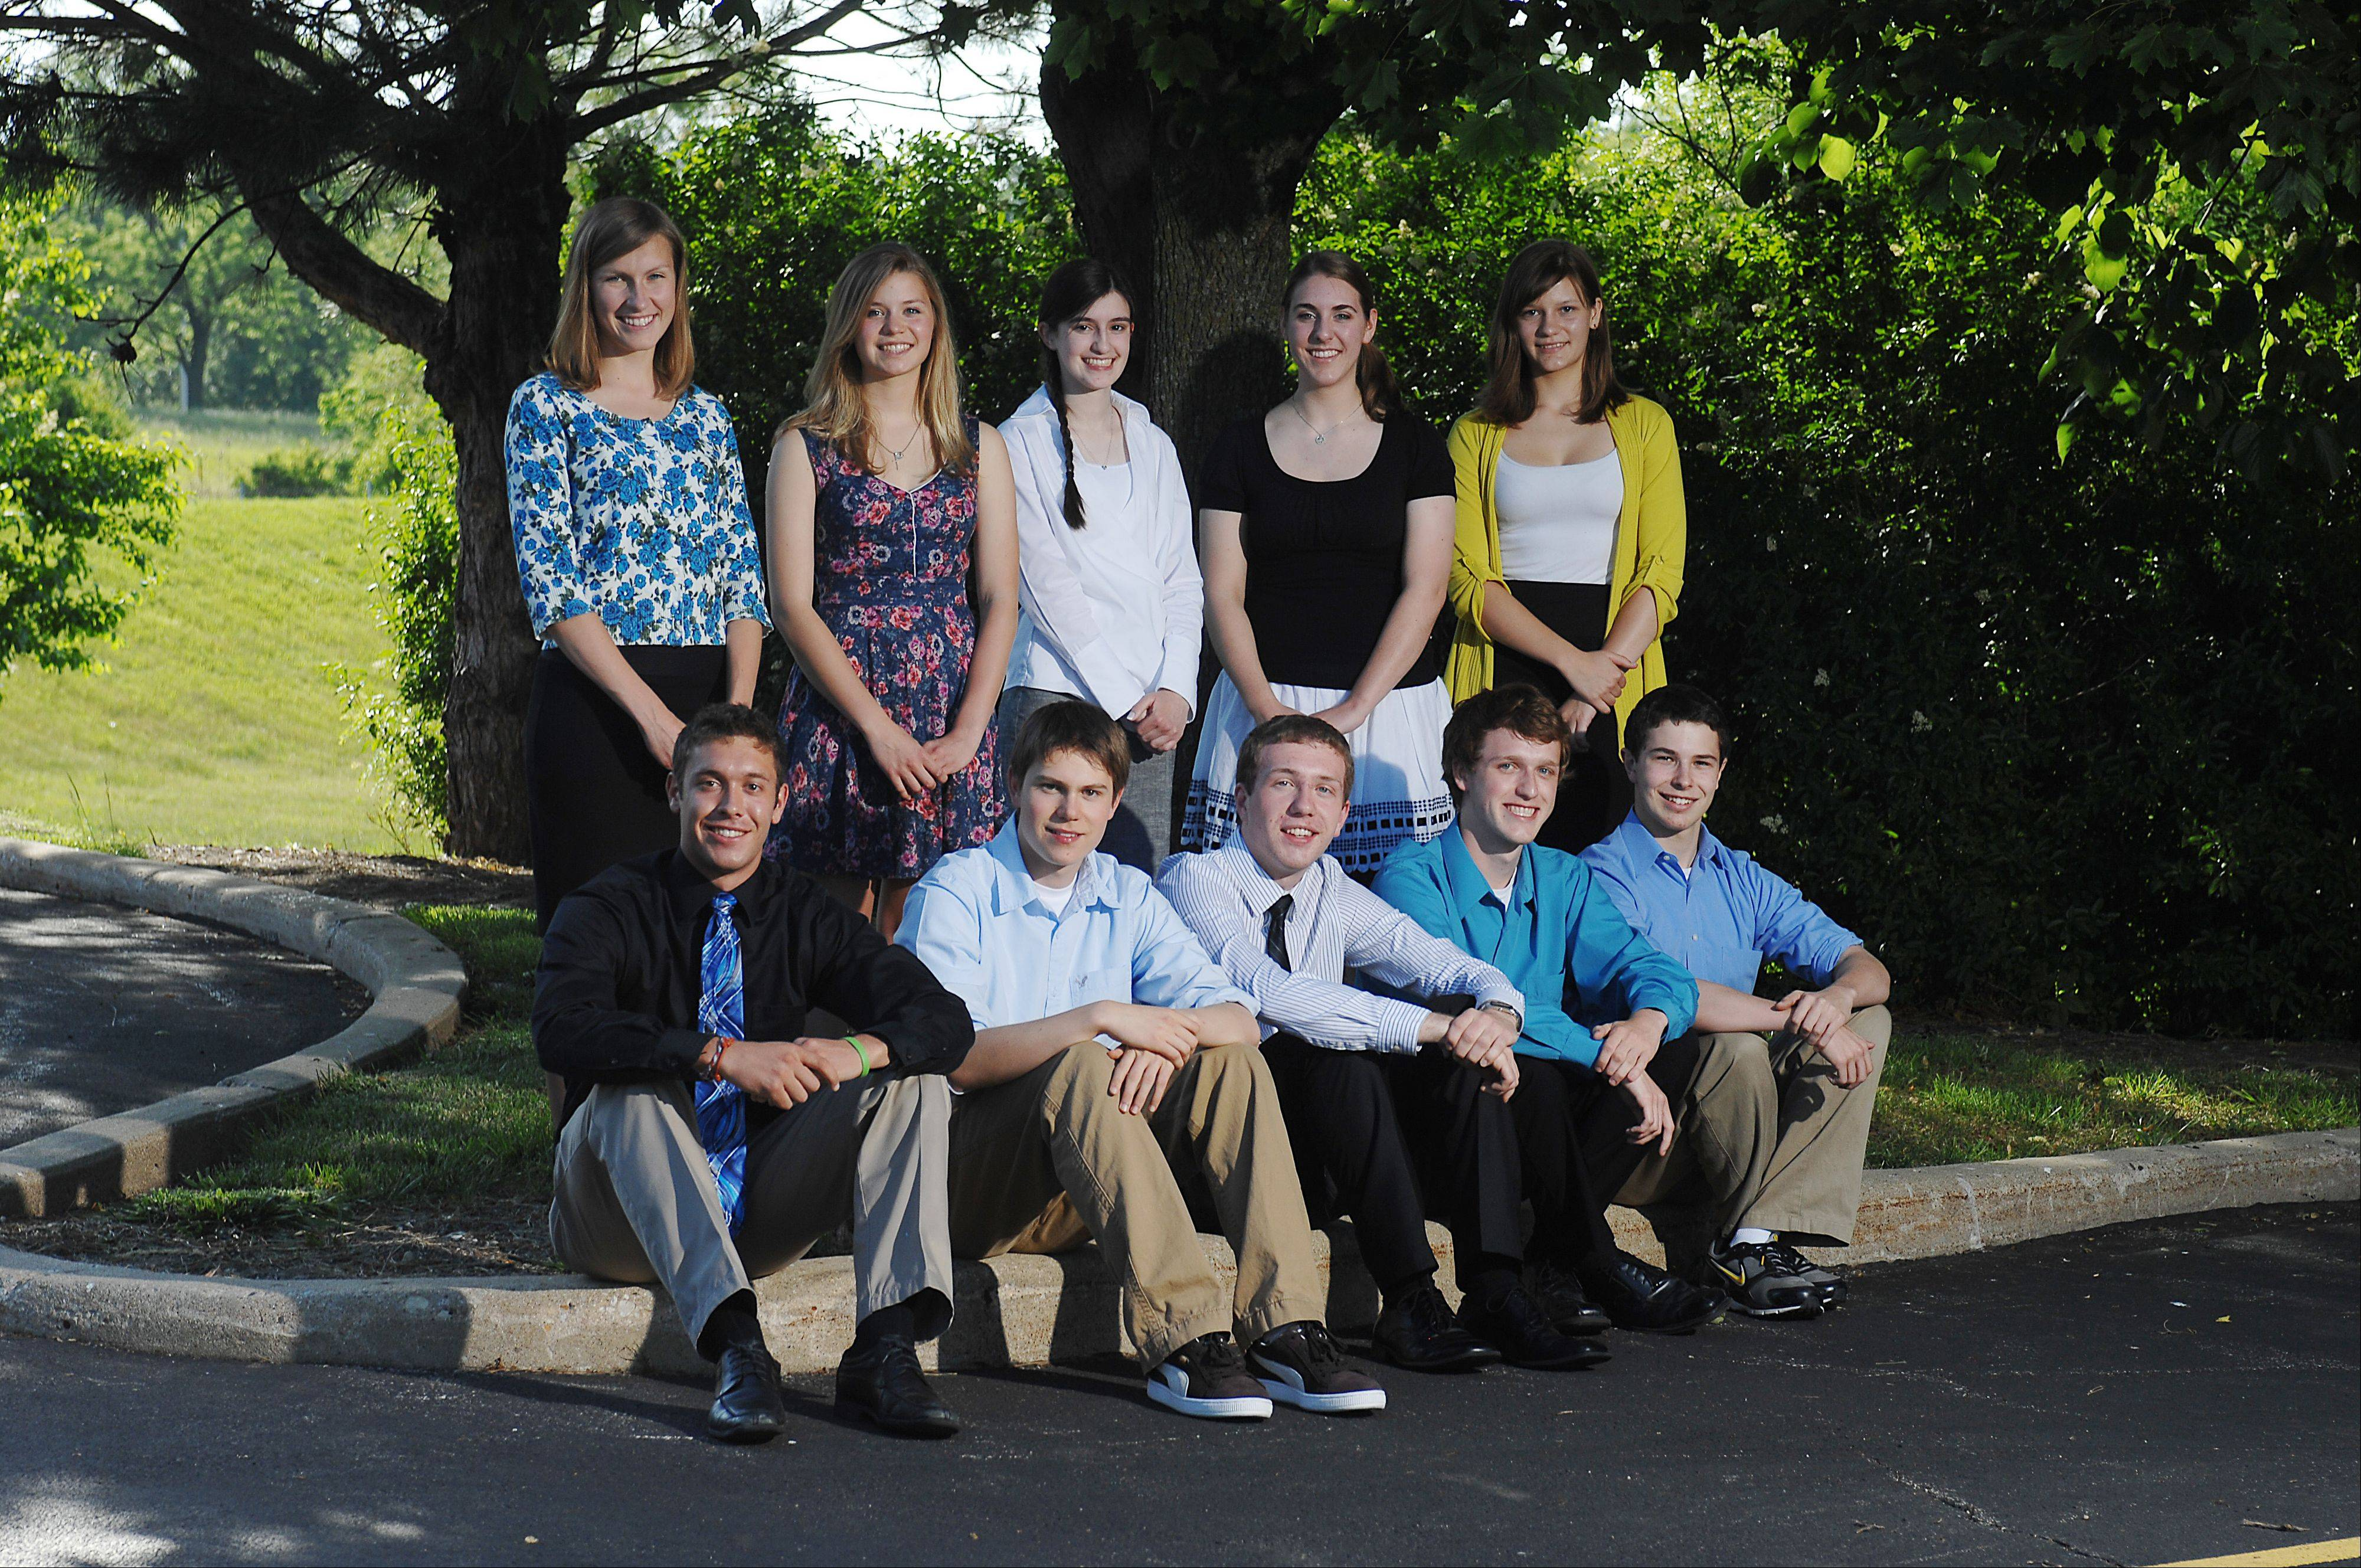 The 2011-12 Fox Valley Academic Team outside the Daily Herald's Elgin office. Front row, from left: Connor Flexman, Elgin Academy; James Bartusek, Geneva High School; Michael Fitzpatrick, Marian Central Catholic High School; Alex Whitaker, Cary-Grove High School; Ryan Wyllie, Geneva High School. Bow row, from left: Anna Gawlik, St. Charles North High School; Alexandra Tarr, (Burlington) Central High School; Allison Dianis, Harry D. Jacobs High School; Madeline Bartot, Huntley High School; and Elisah Vanden Bussche, Harry D. Jacobs High School.